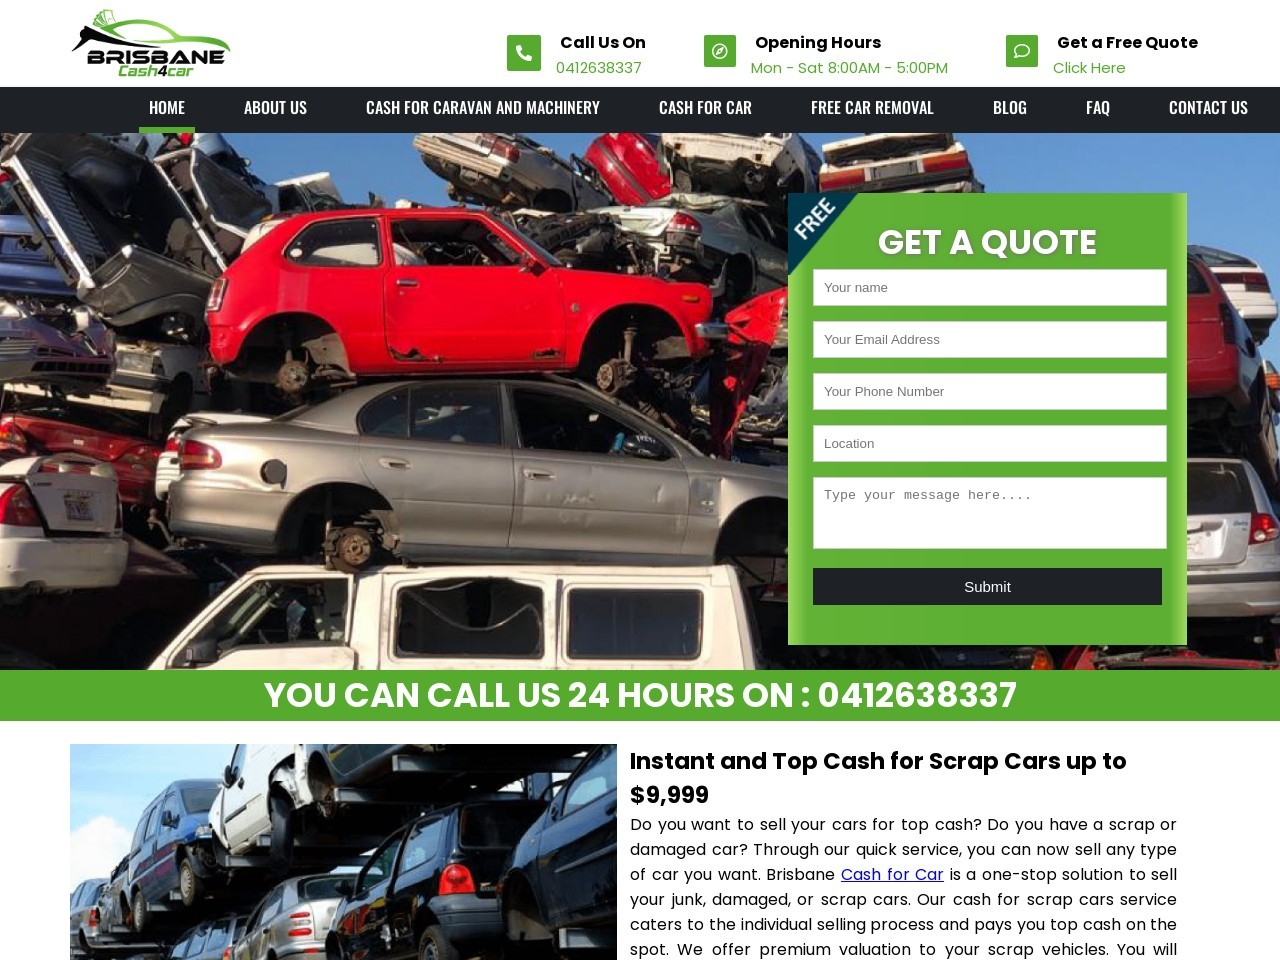 Sell your car for top cash for car